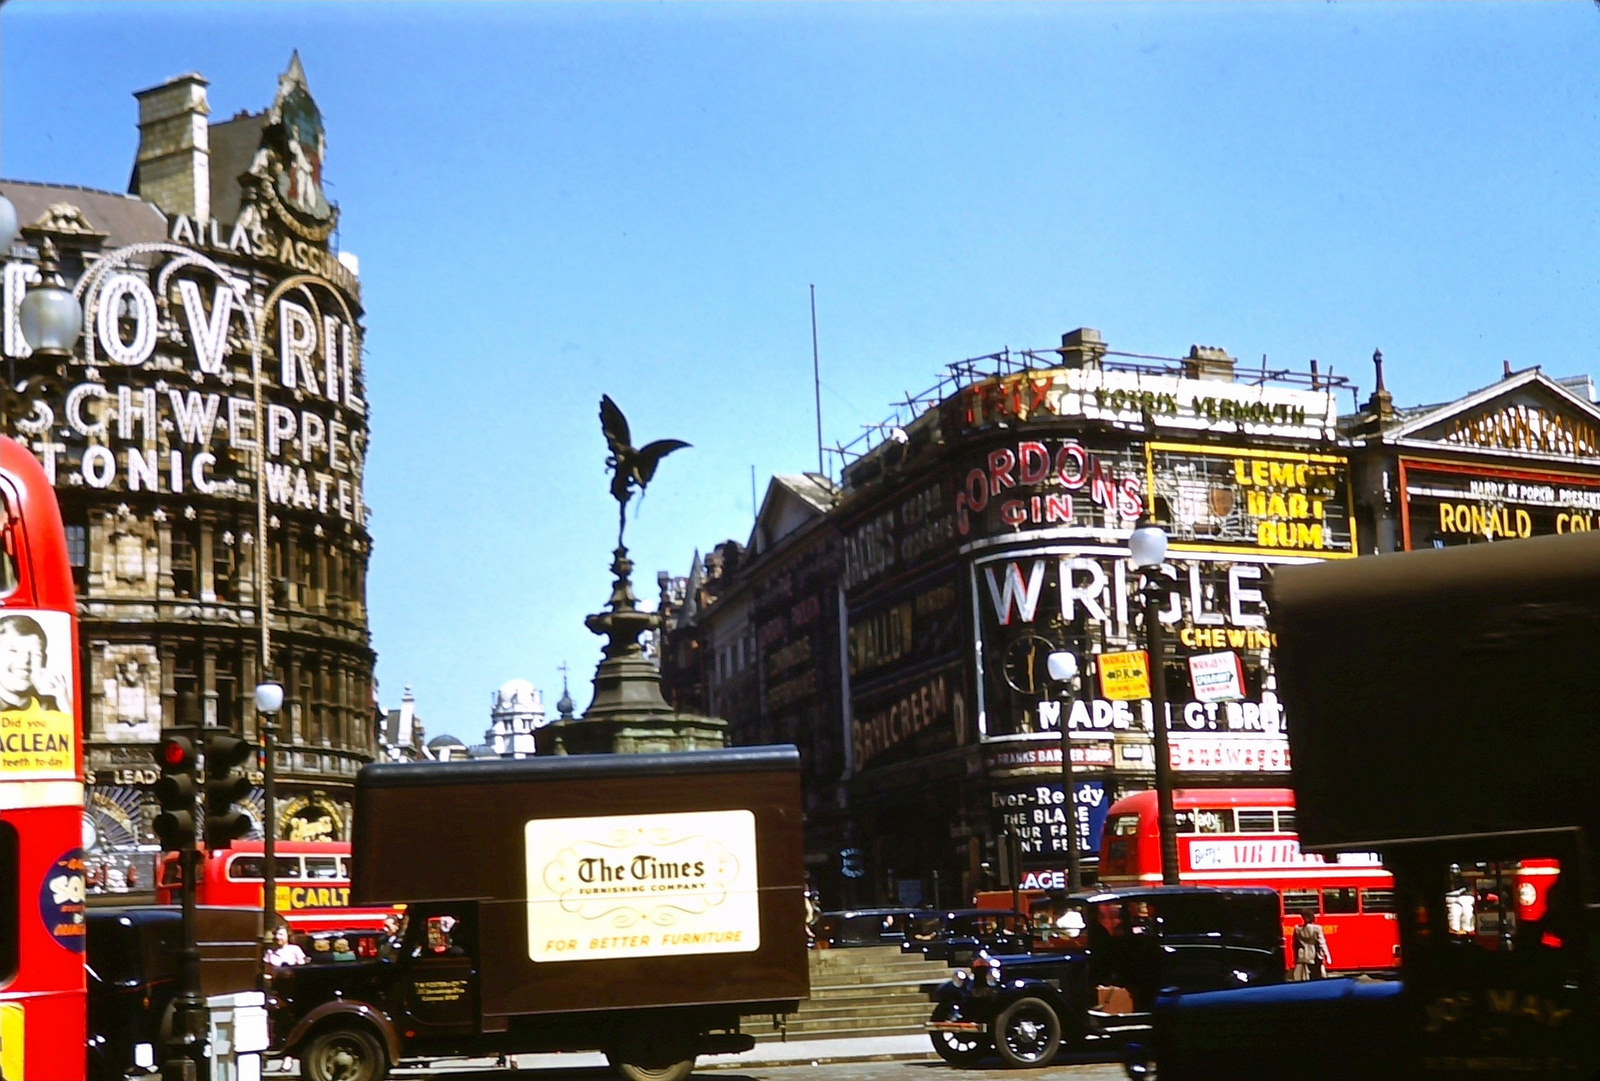 1950 London Eros in Piccadilly Circus, May 10, 1950